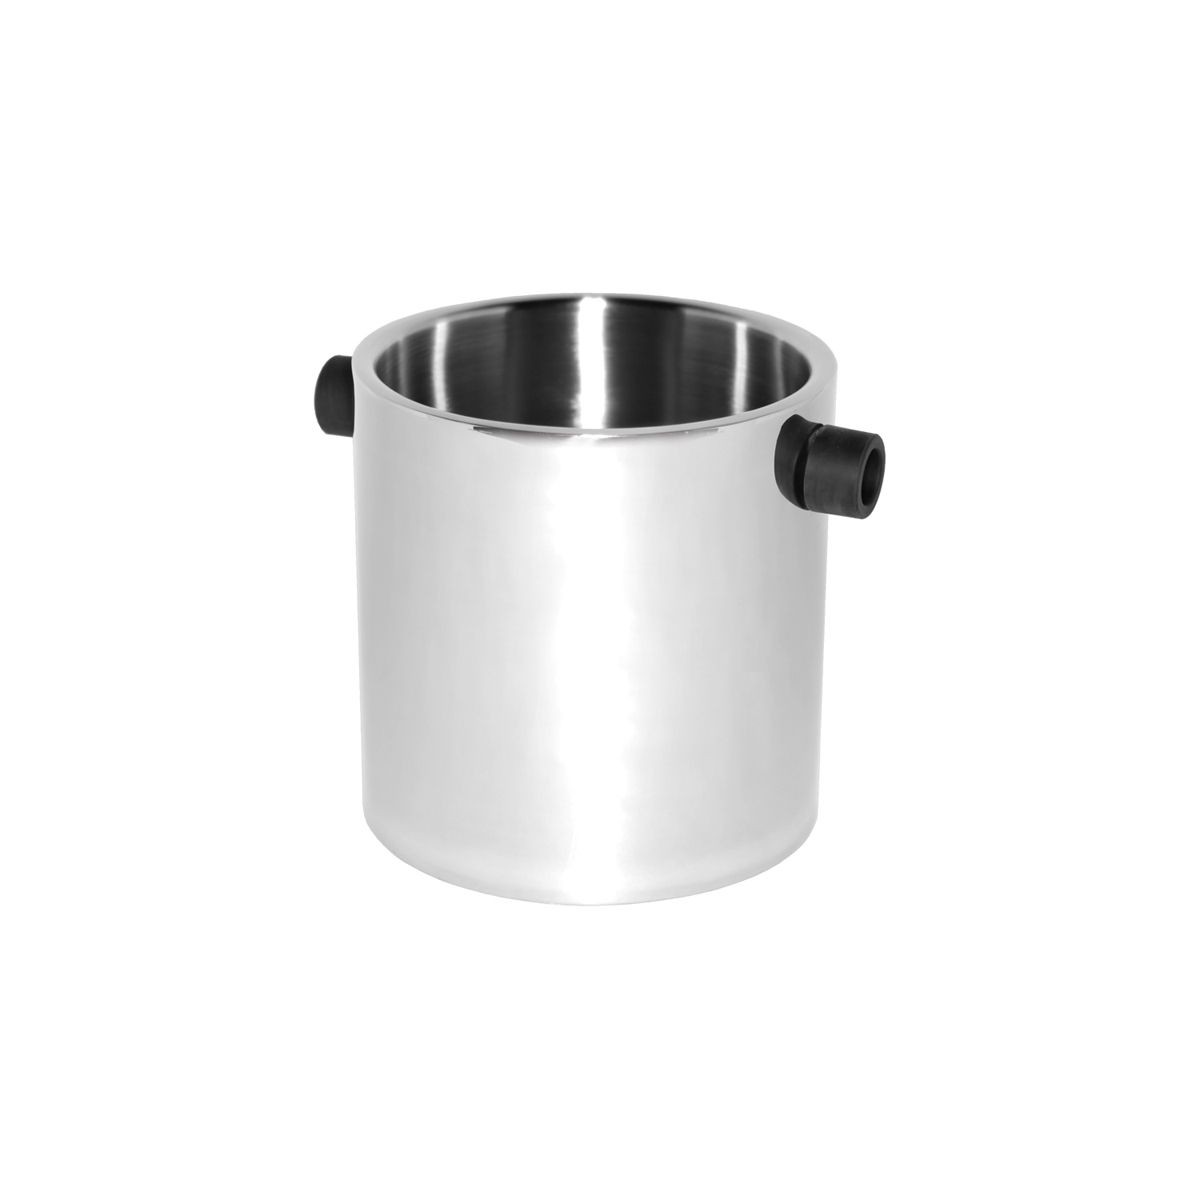 Service Ideas SM-3 SteelForme Champagne Bucket, 2.4 Qt.